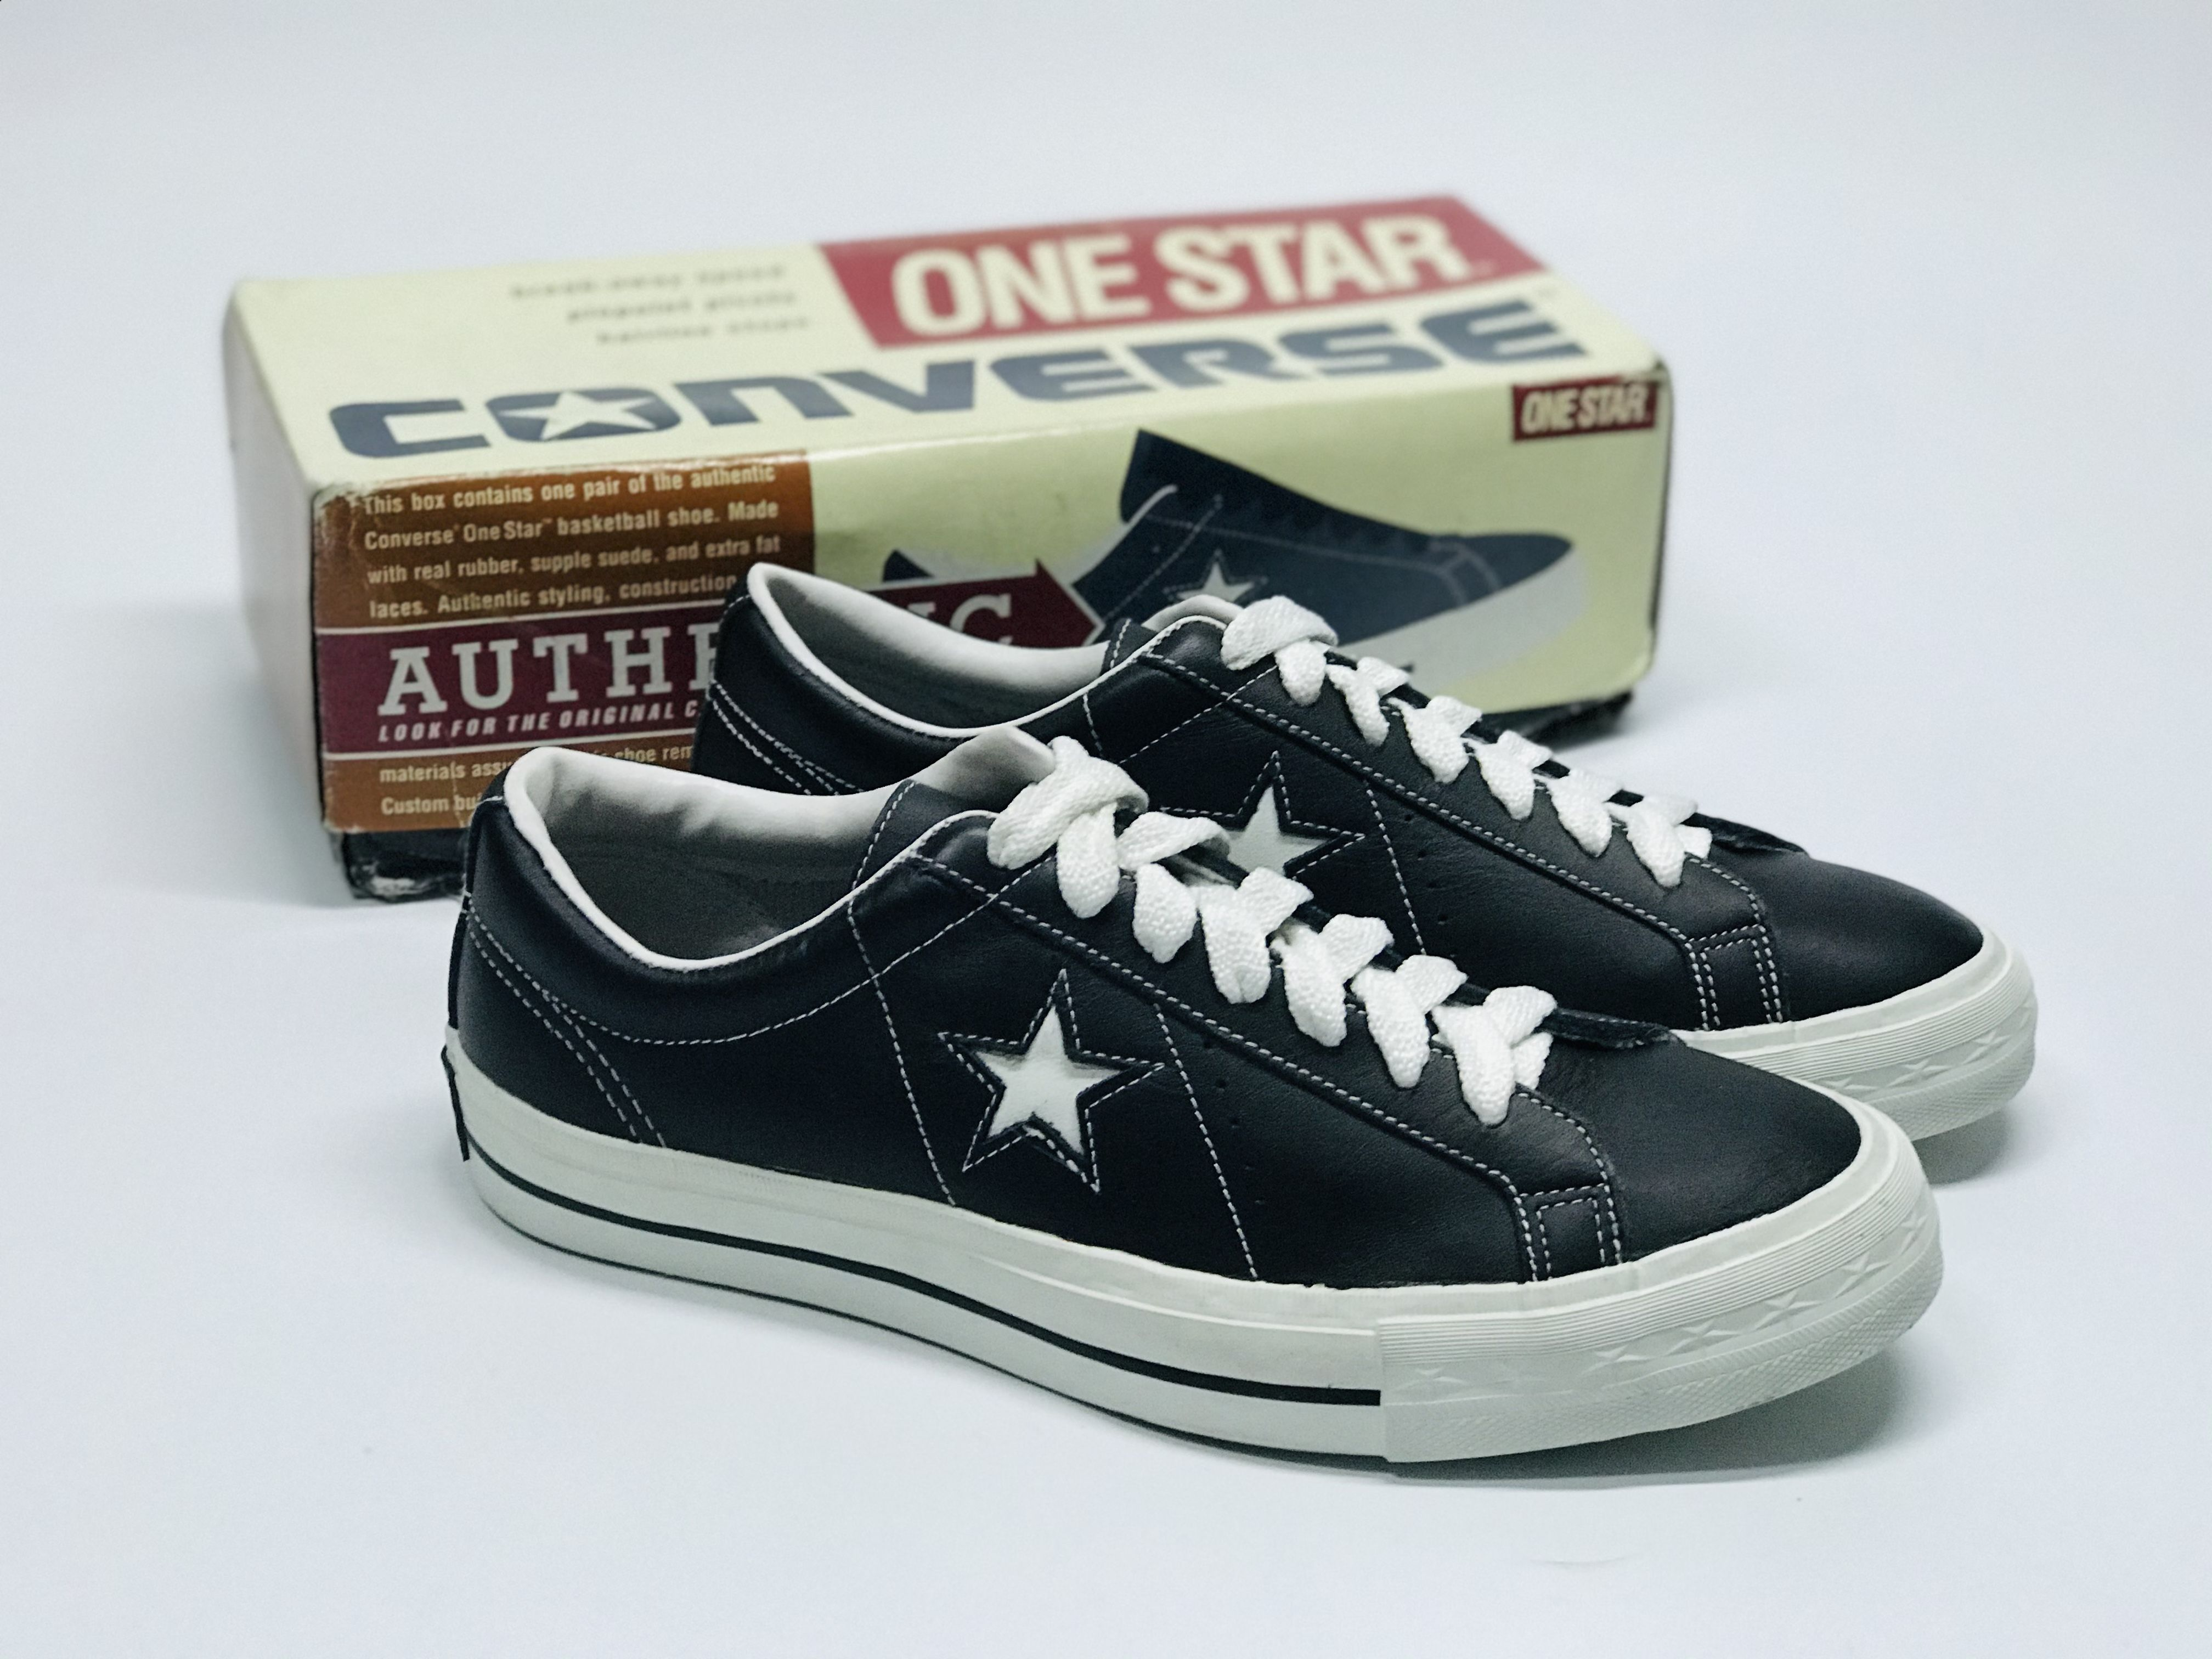 Calvo primero proteger  CONVERSE ONE STAR 1990s Leather made in China (New With Box) in 2020    Converse, Converse one star, Leather